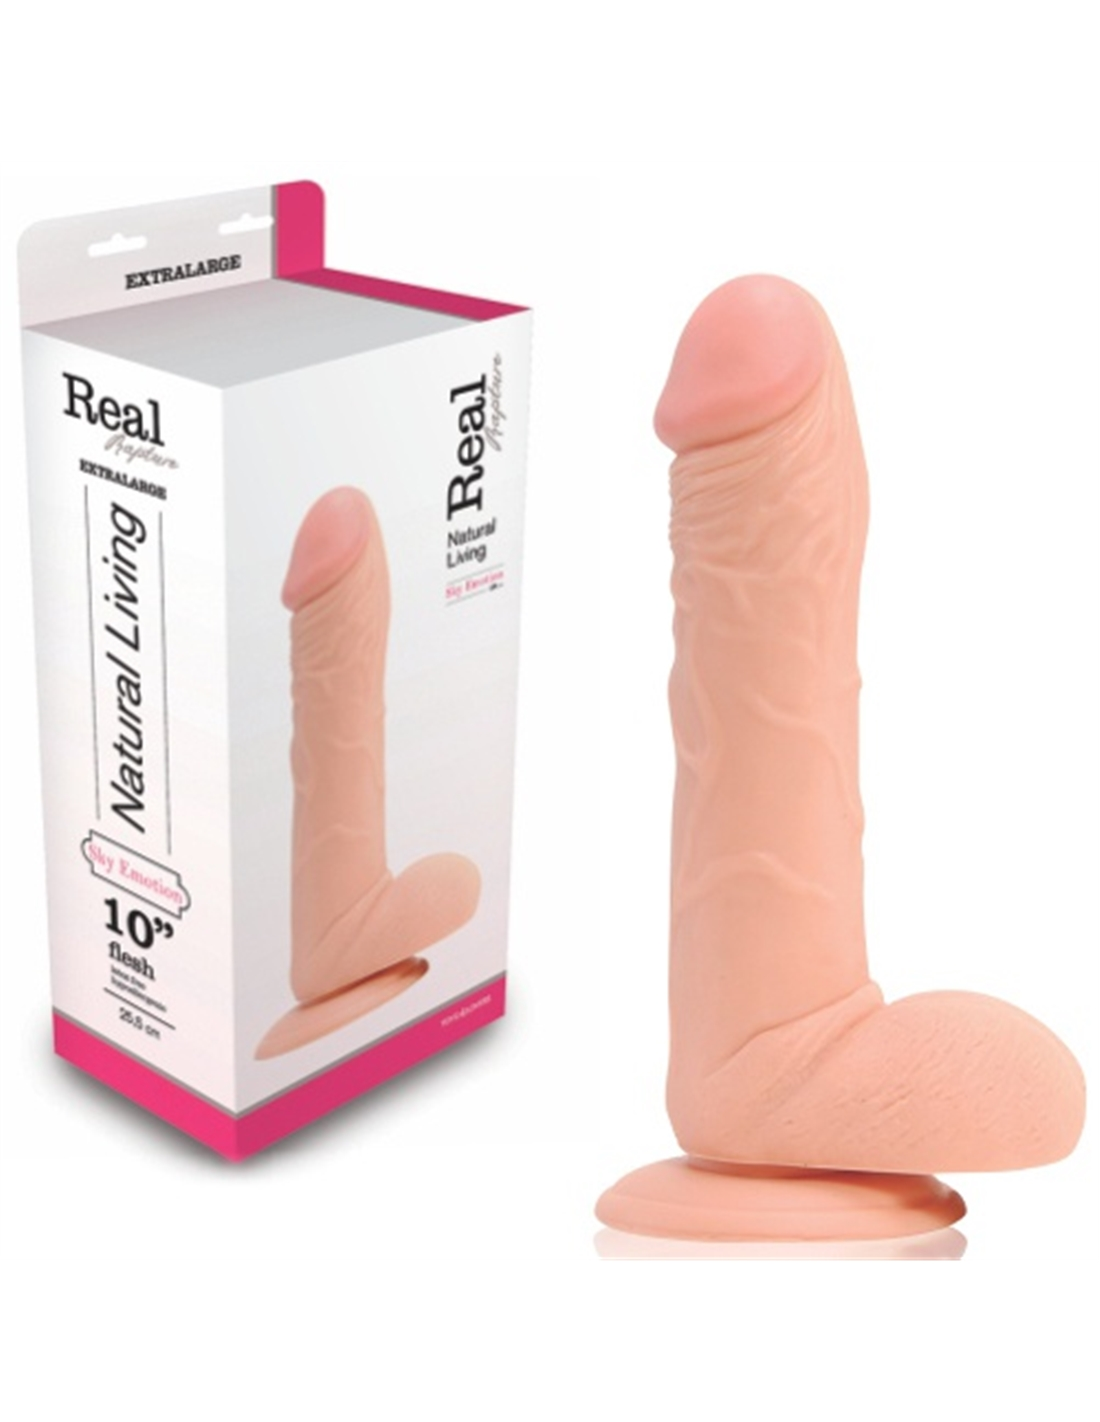 Dildo Realístico Real Rapture Sky Emotion 10'' Branco - PR2010322042